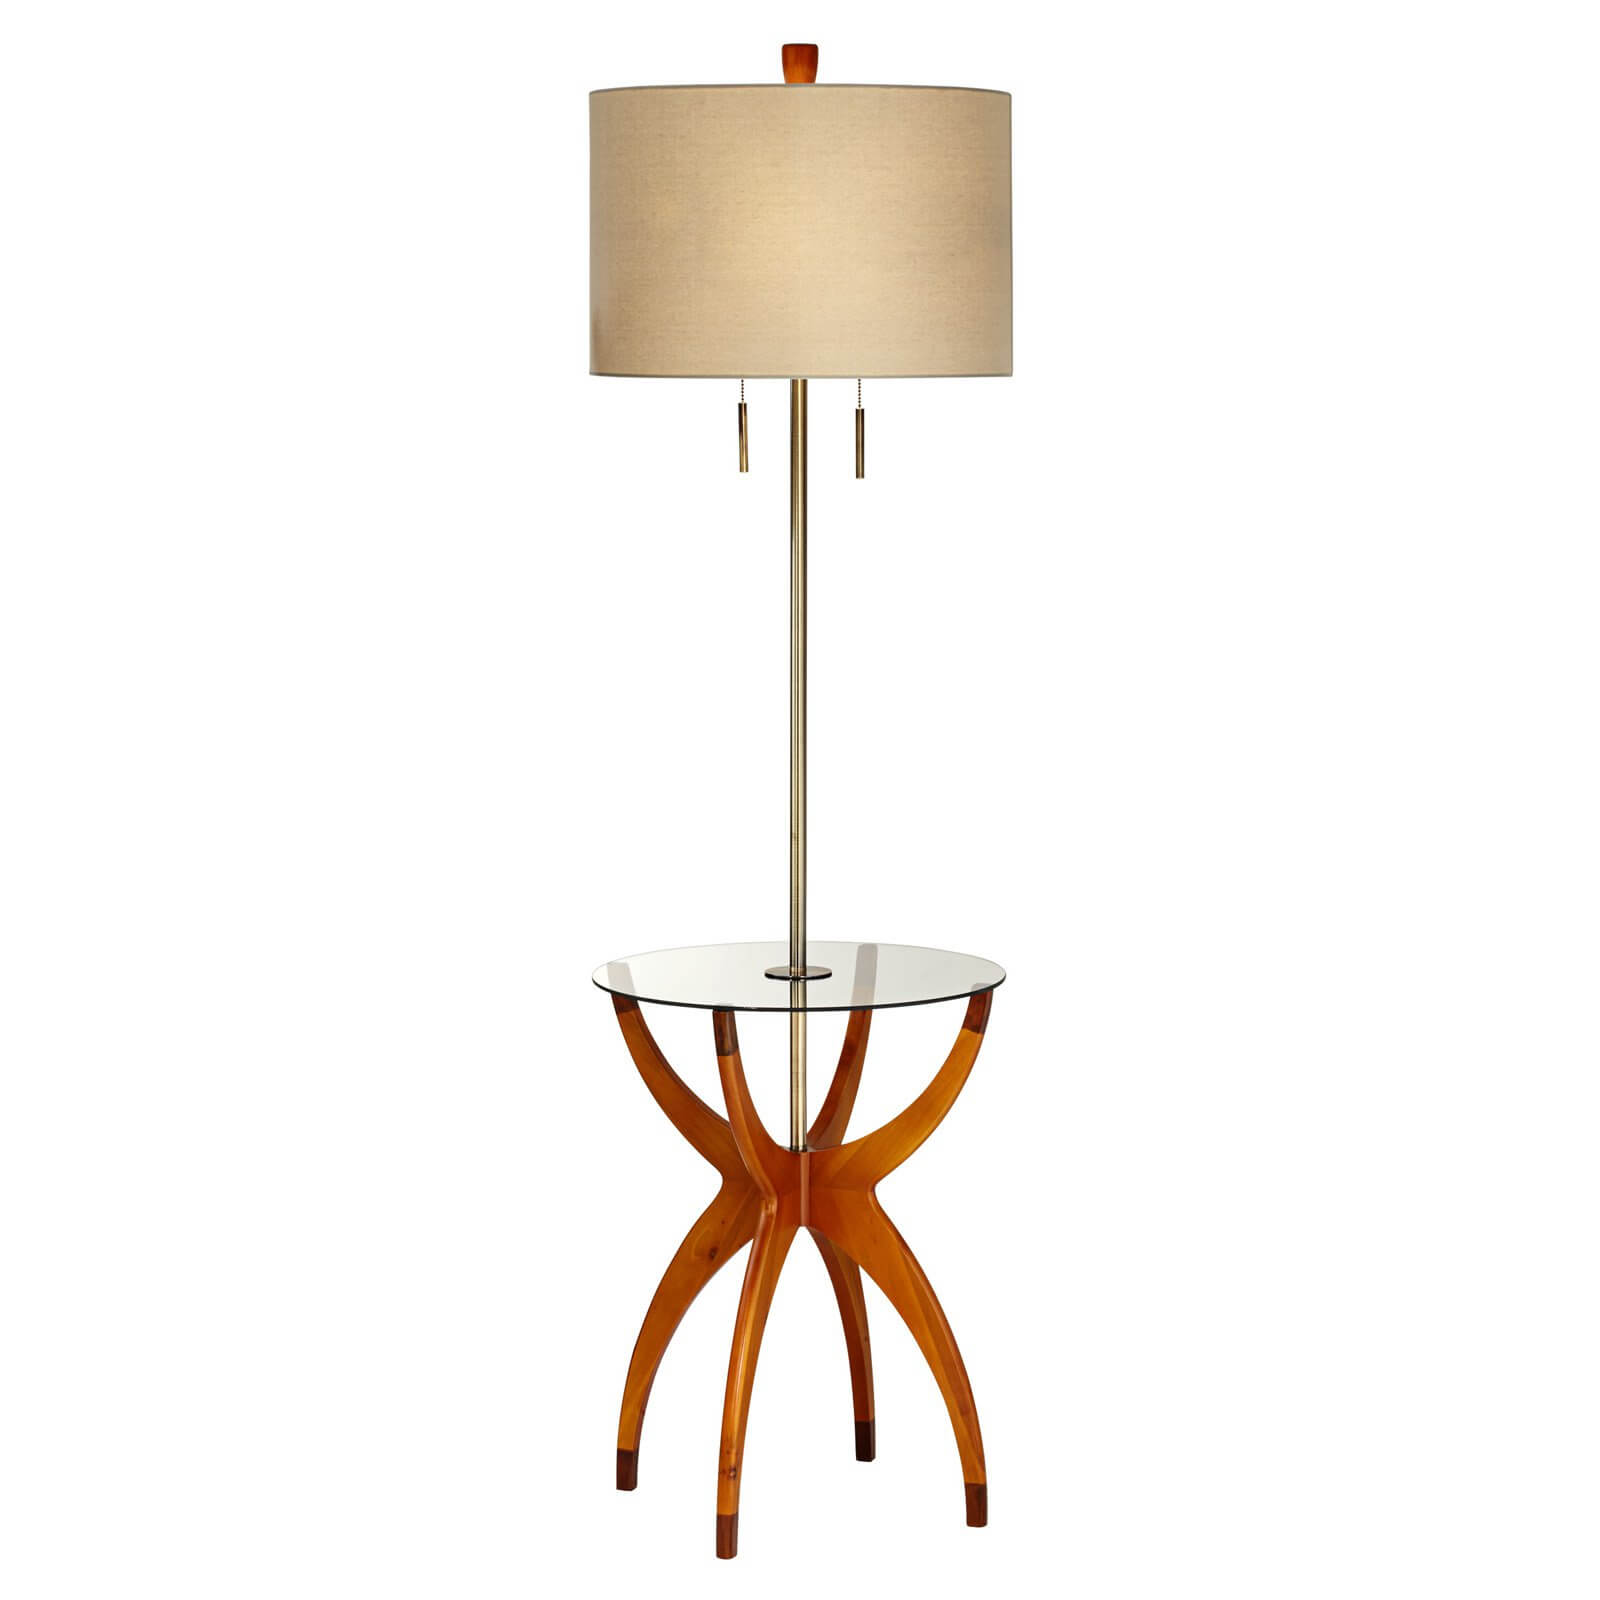 This modern styled example features bright carved natural wood base holding a seamless glass circular tabletop beneath a nickel frame and standard cylinder shade.